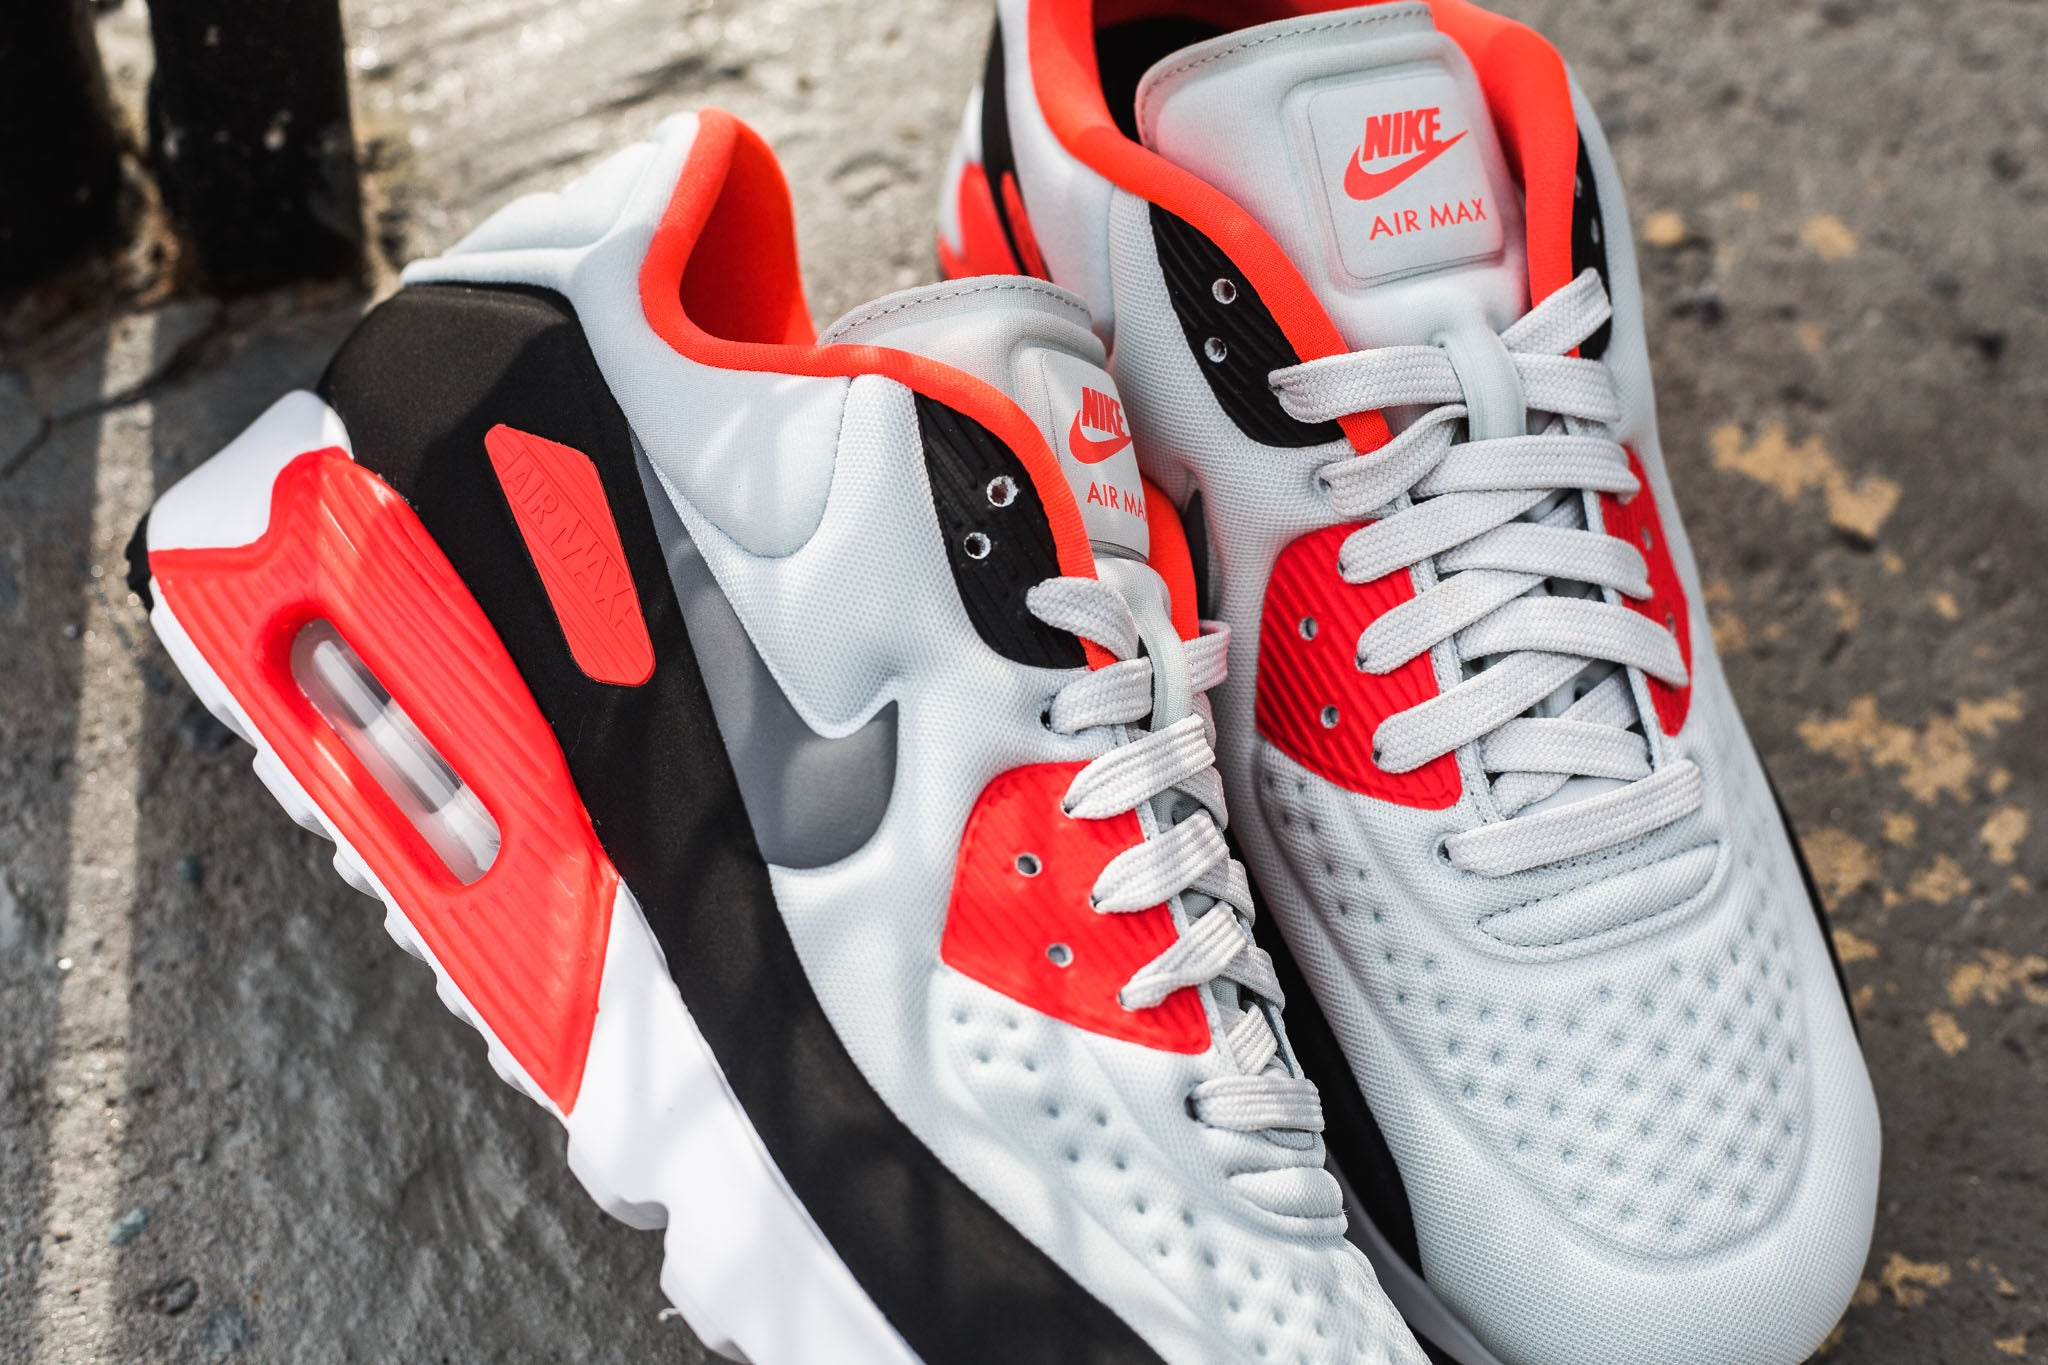 big discount free shipping speical offer Air Max 90 Ultra SE